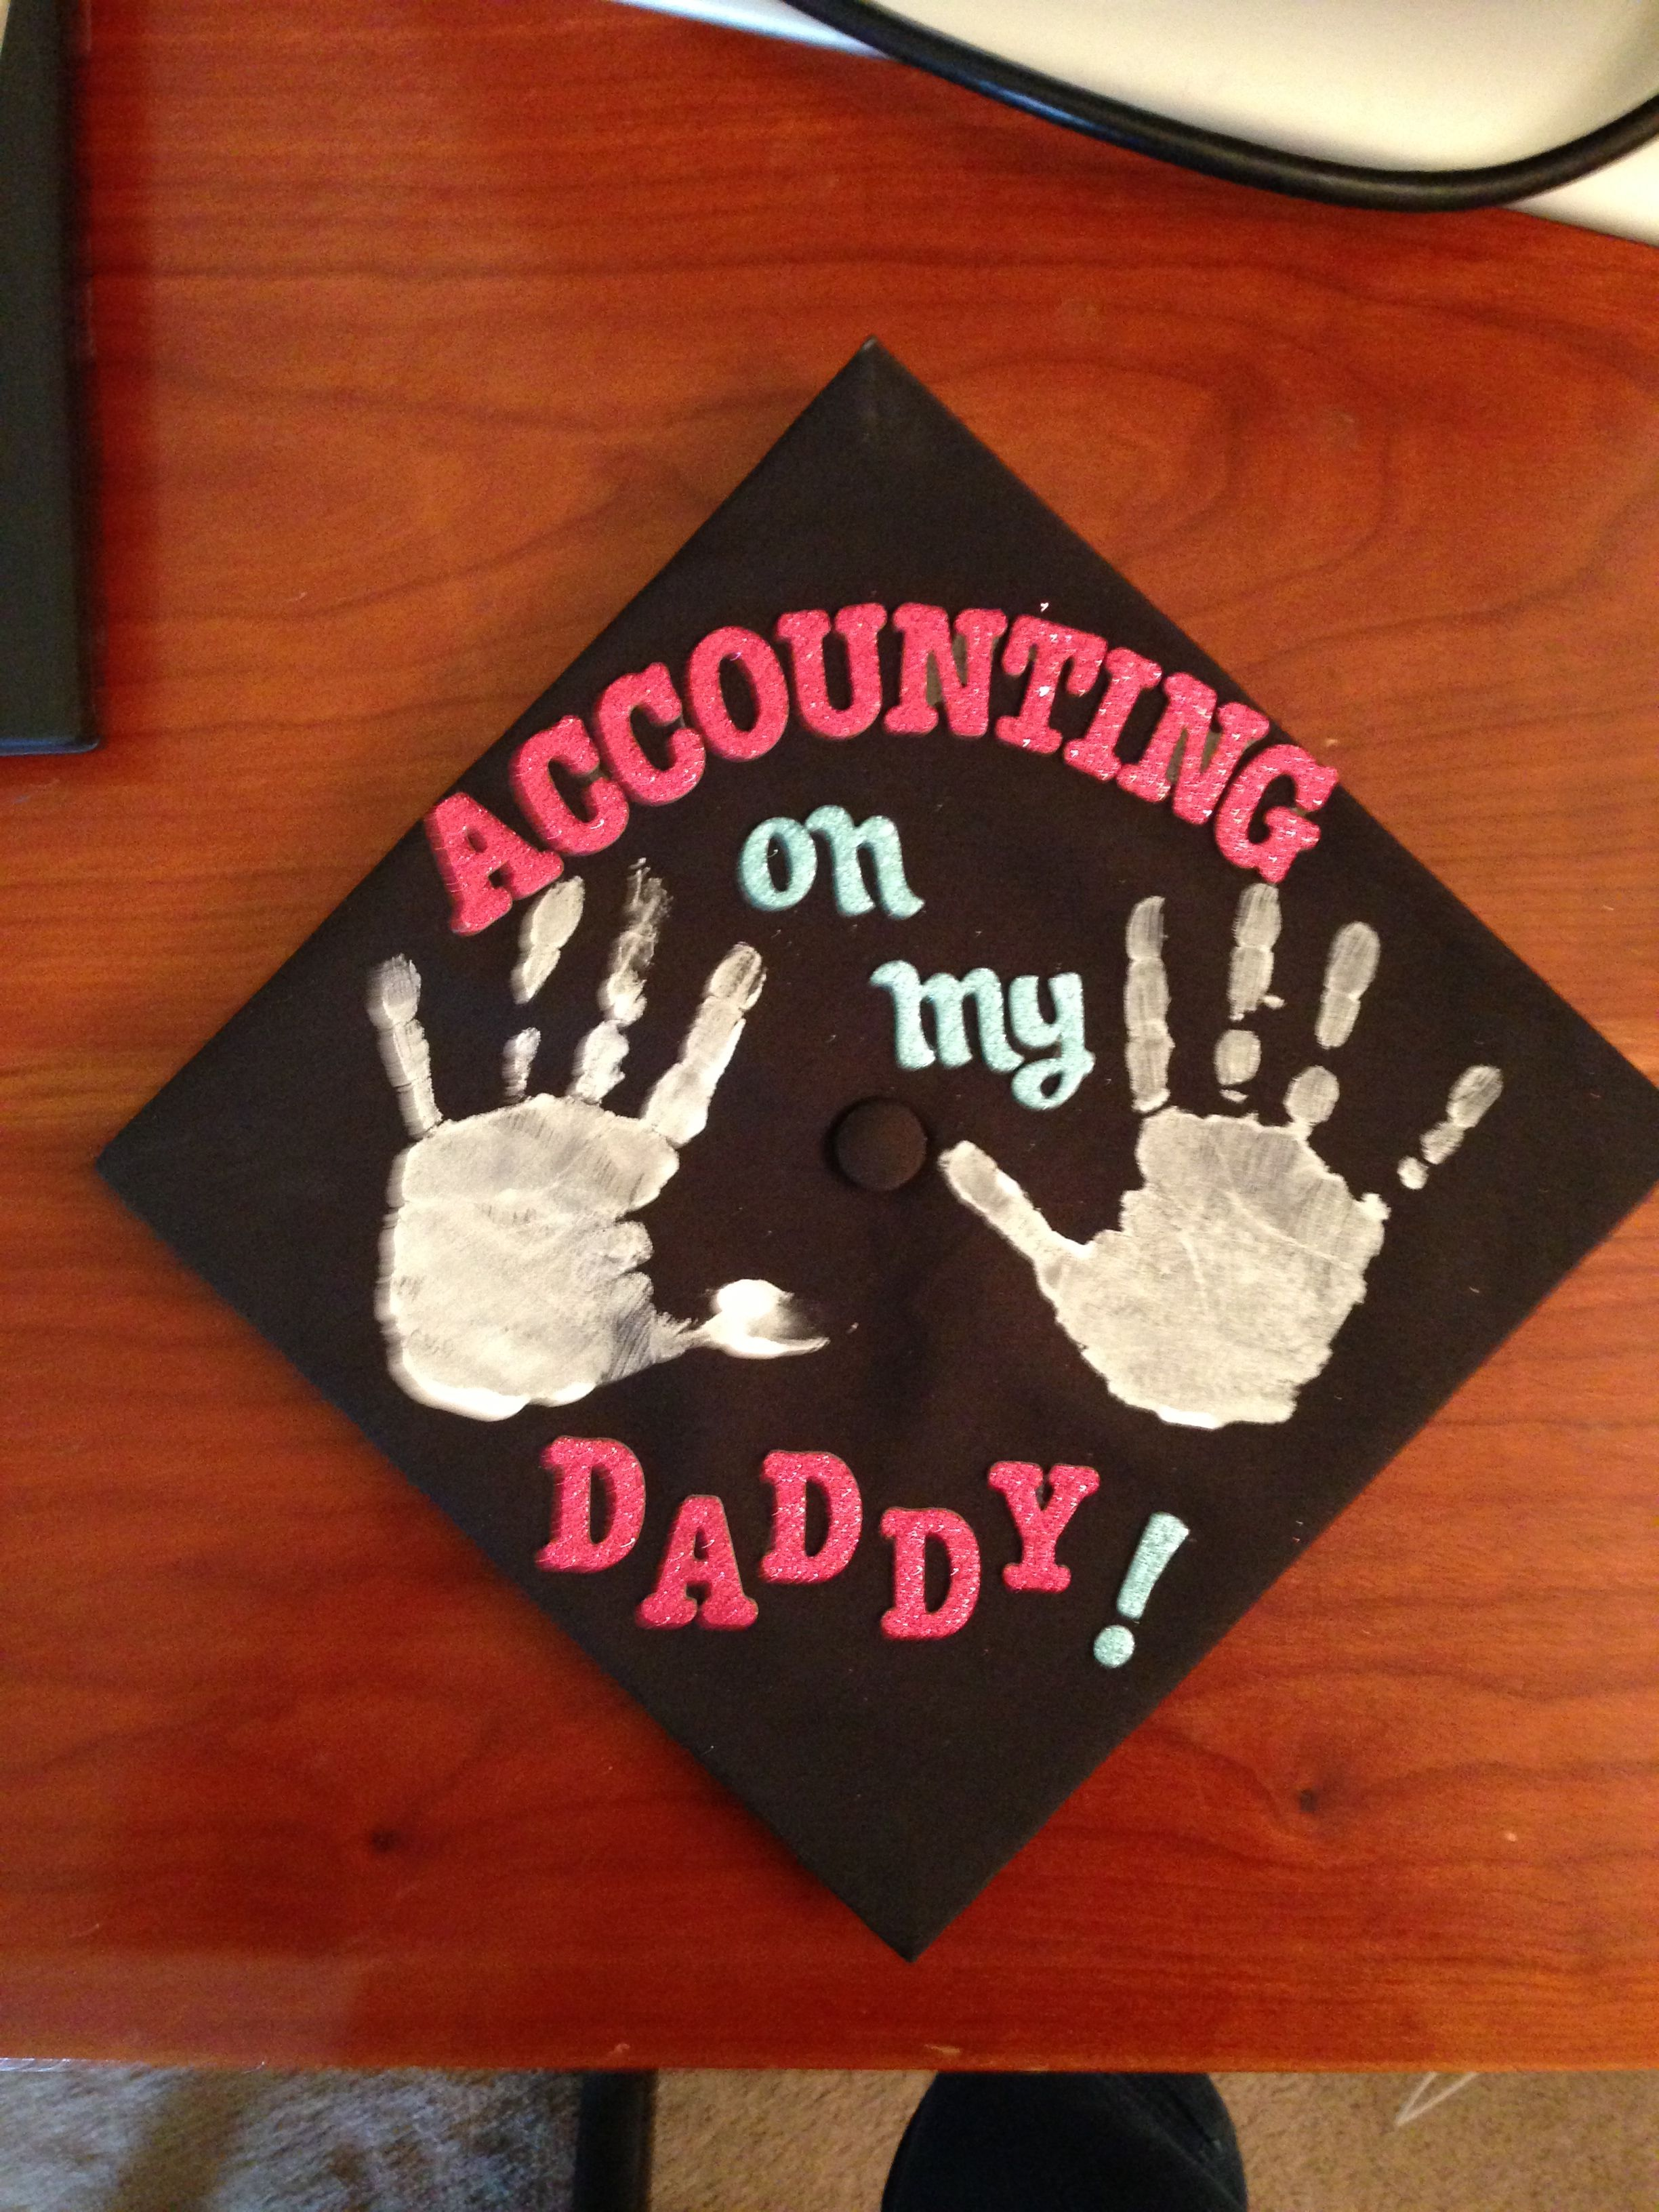 Graduation cap for accounting majors with kids for Accounting graduation cap decoration